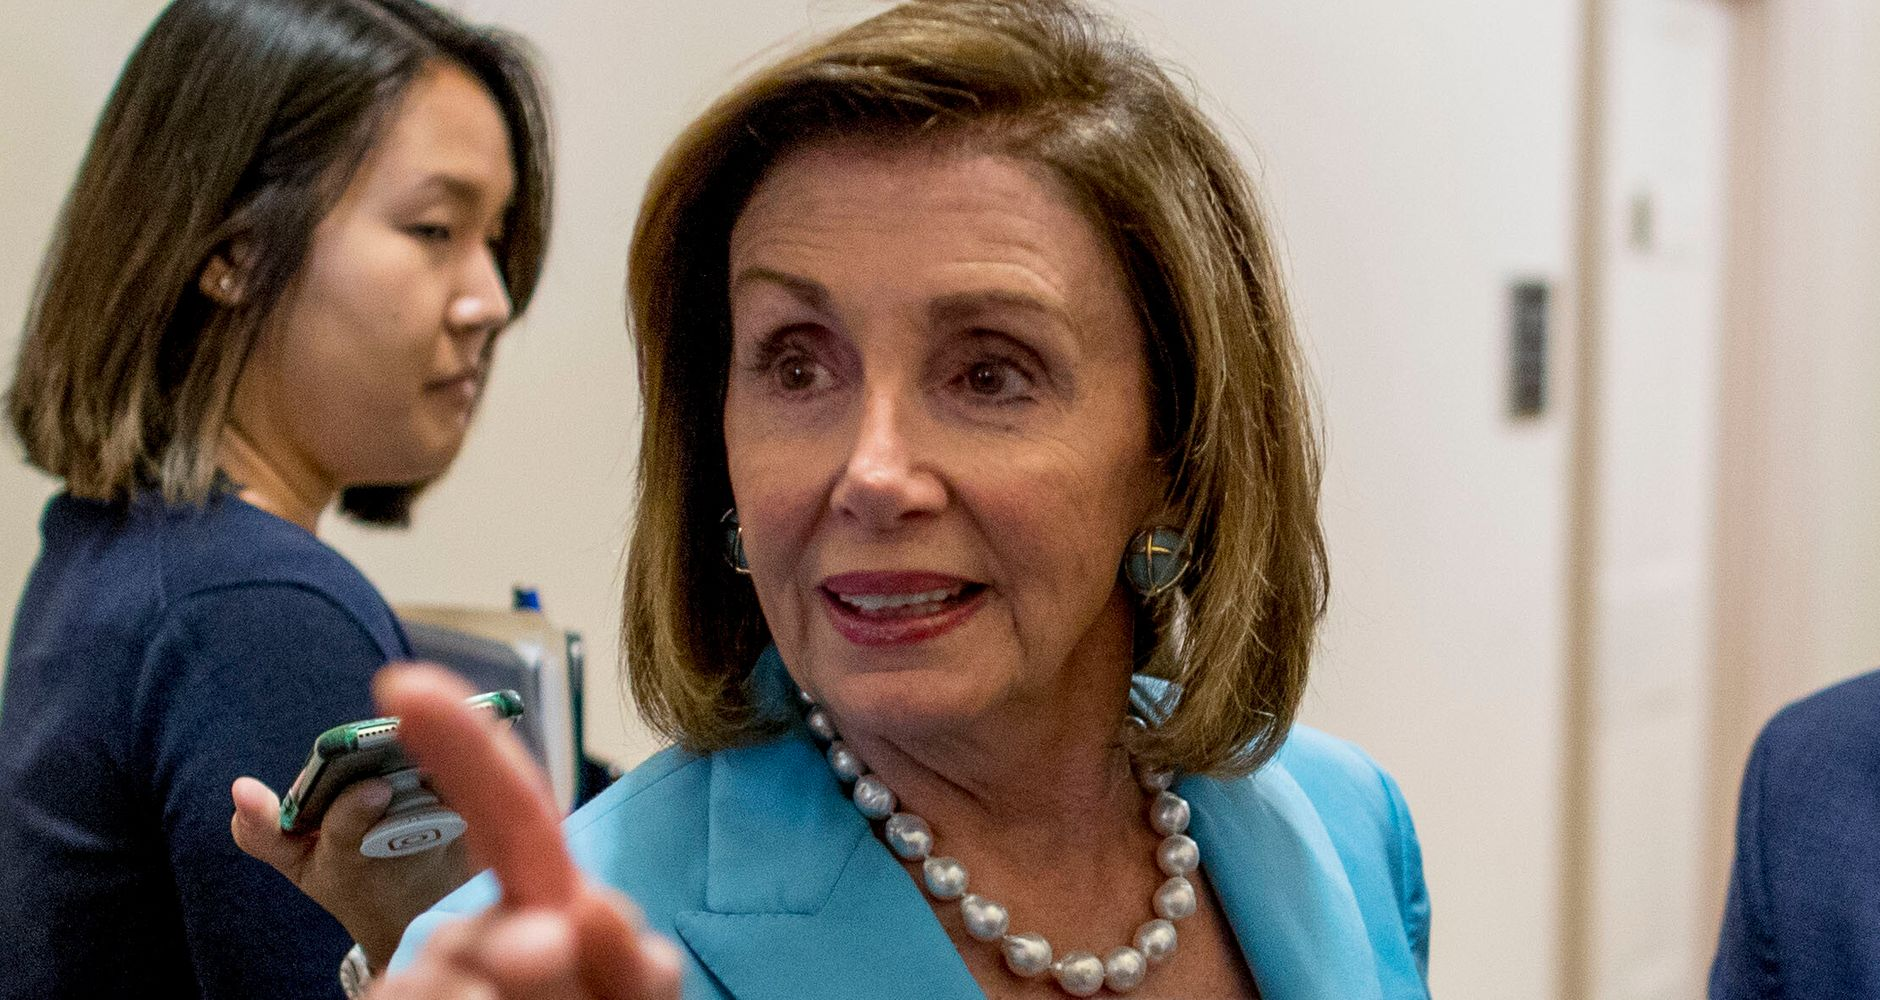 Westlake Legal Group 5d26a57d2400009d179352de Pelosi Stands By Her Dismissal Of Freshman Democrats: 'Regrets Is Not What I Do'